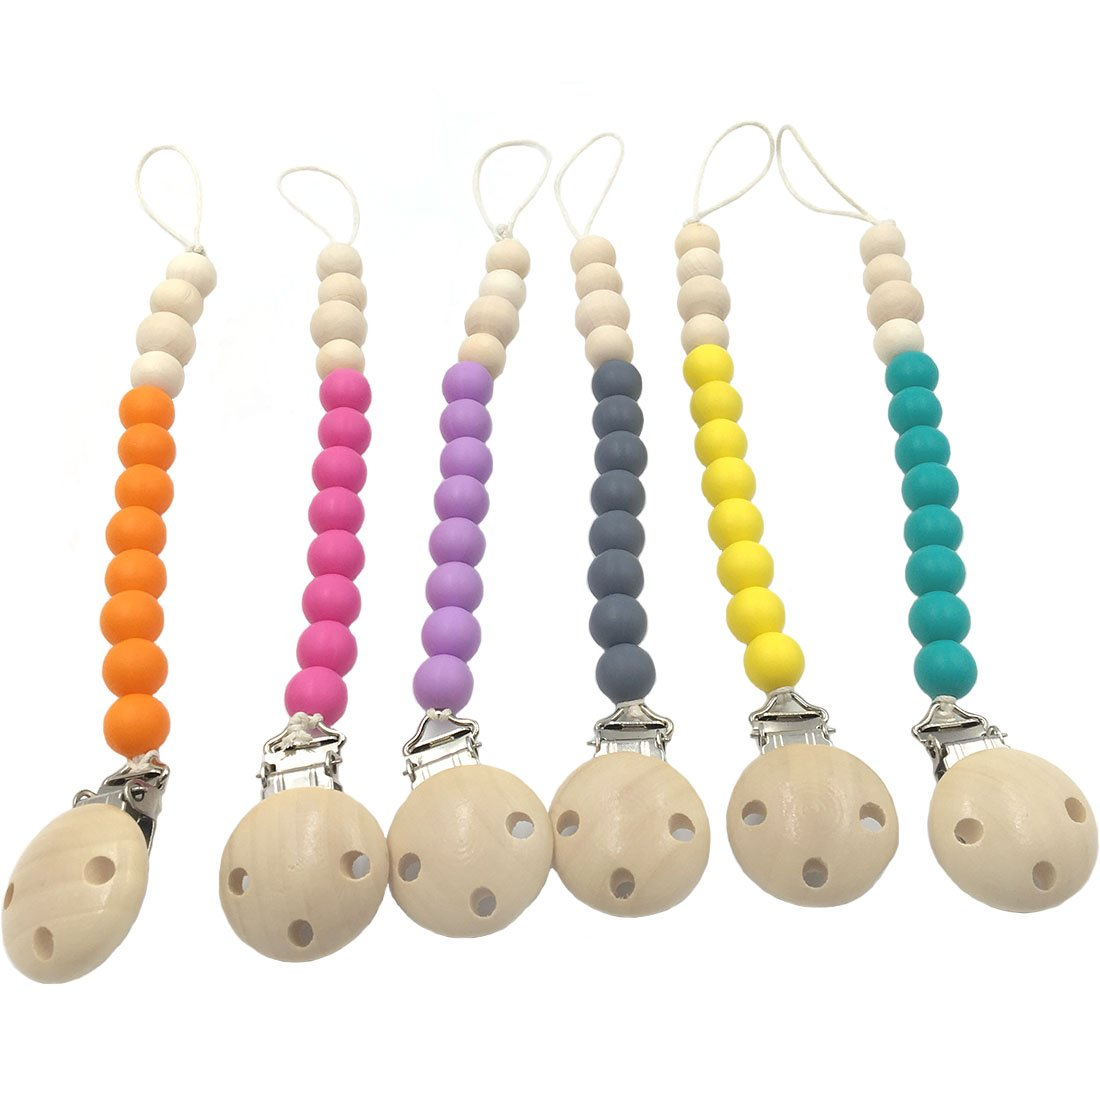 Amyster Silicone Teething Grey Stone Dummy Baby Pacifier Clip Natural Wood Beads Mom Nursing Waldorf Teether Grey